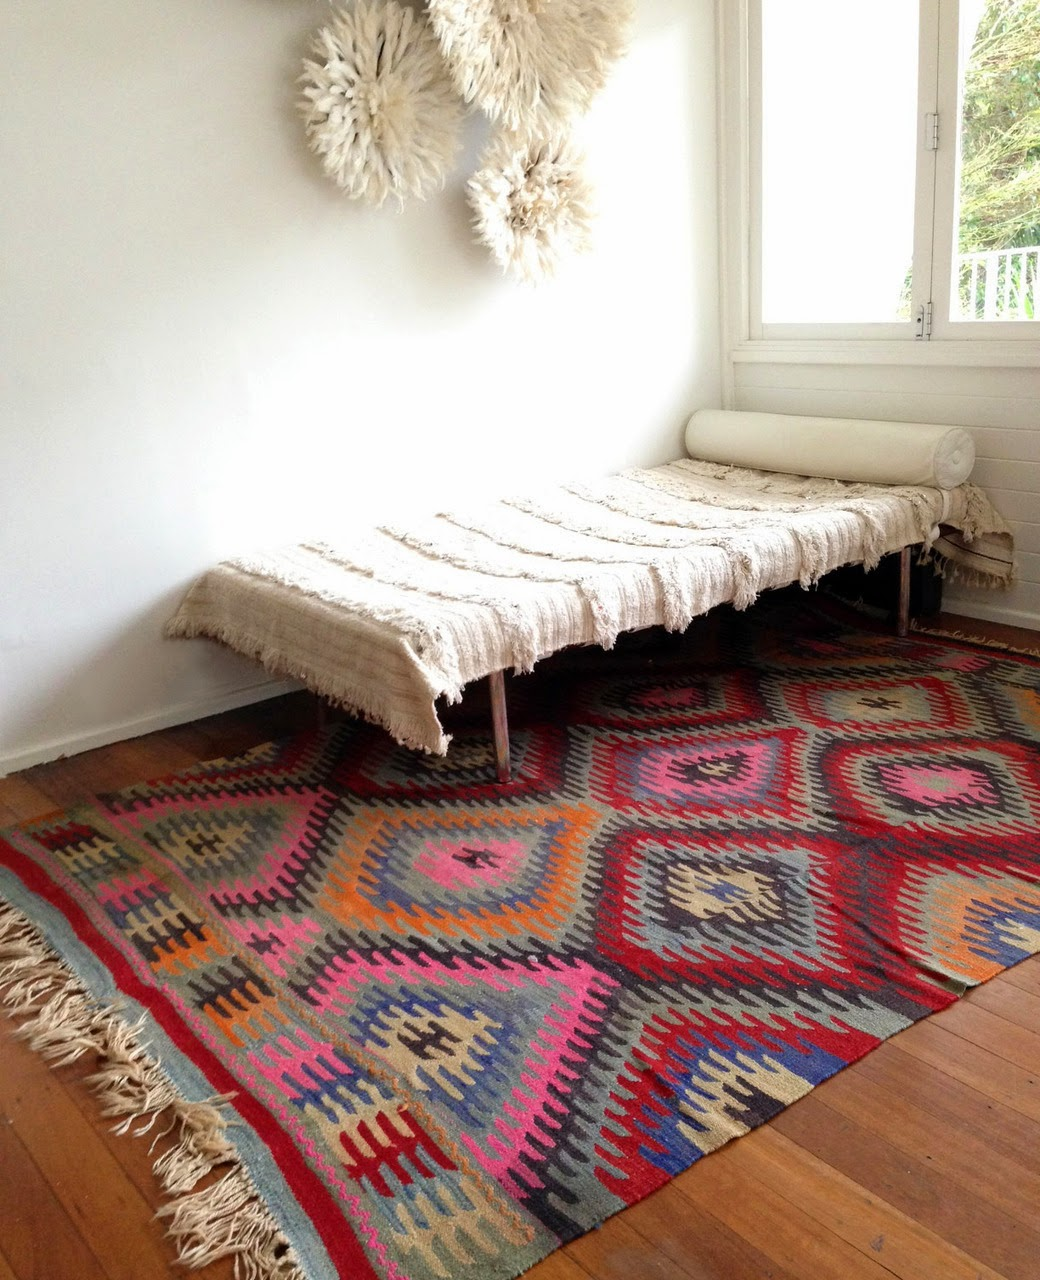 What Makes Turkish Rugs Great How You Can Read The Design Of A Turkish Rug: Going Coastal